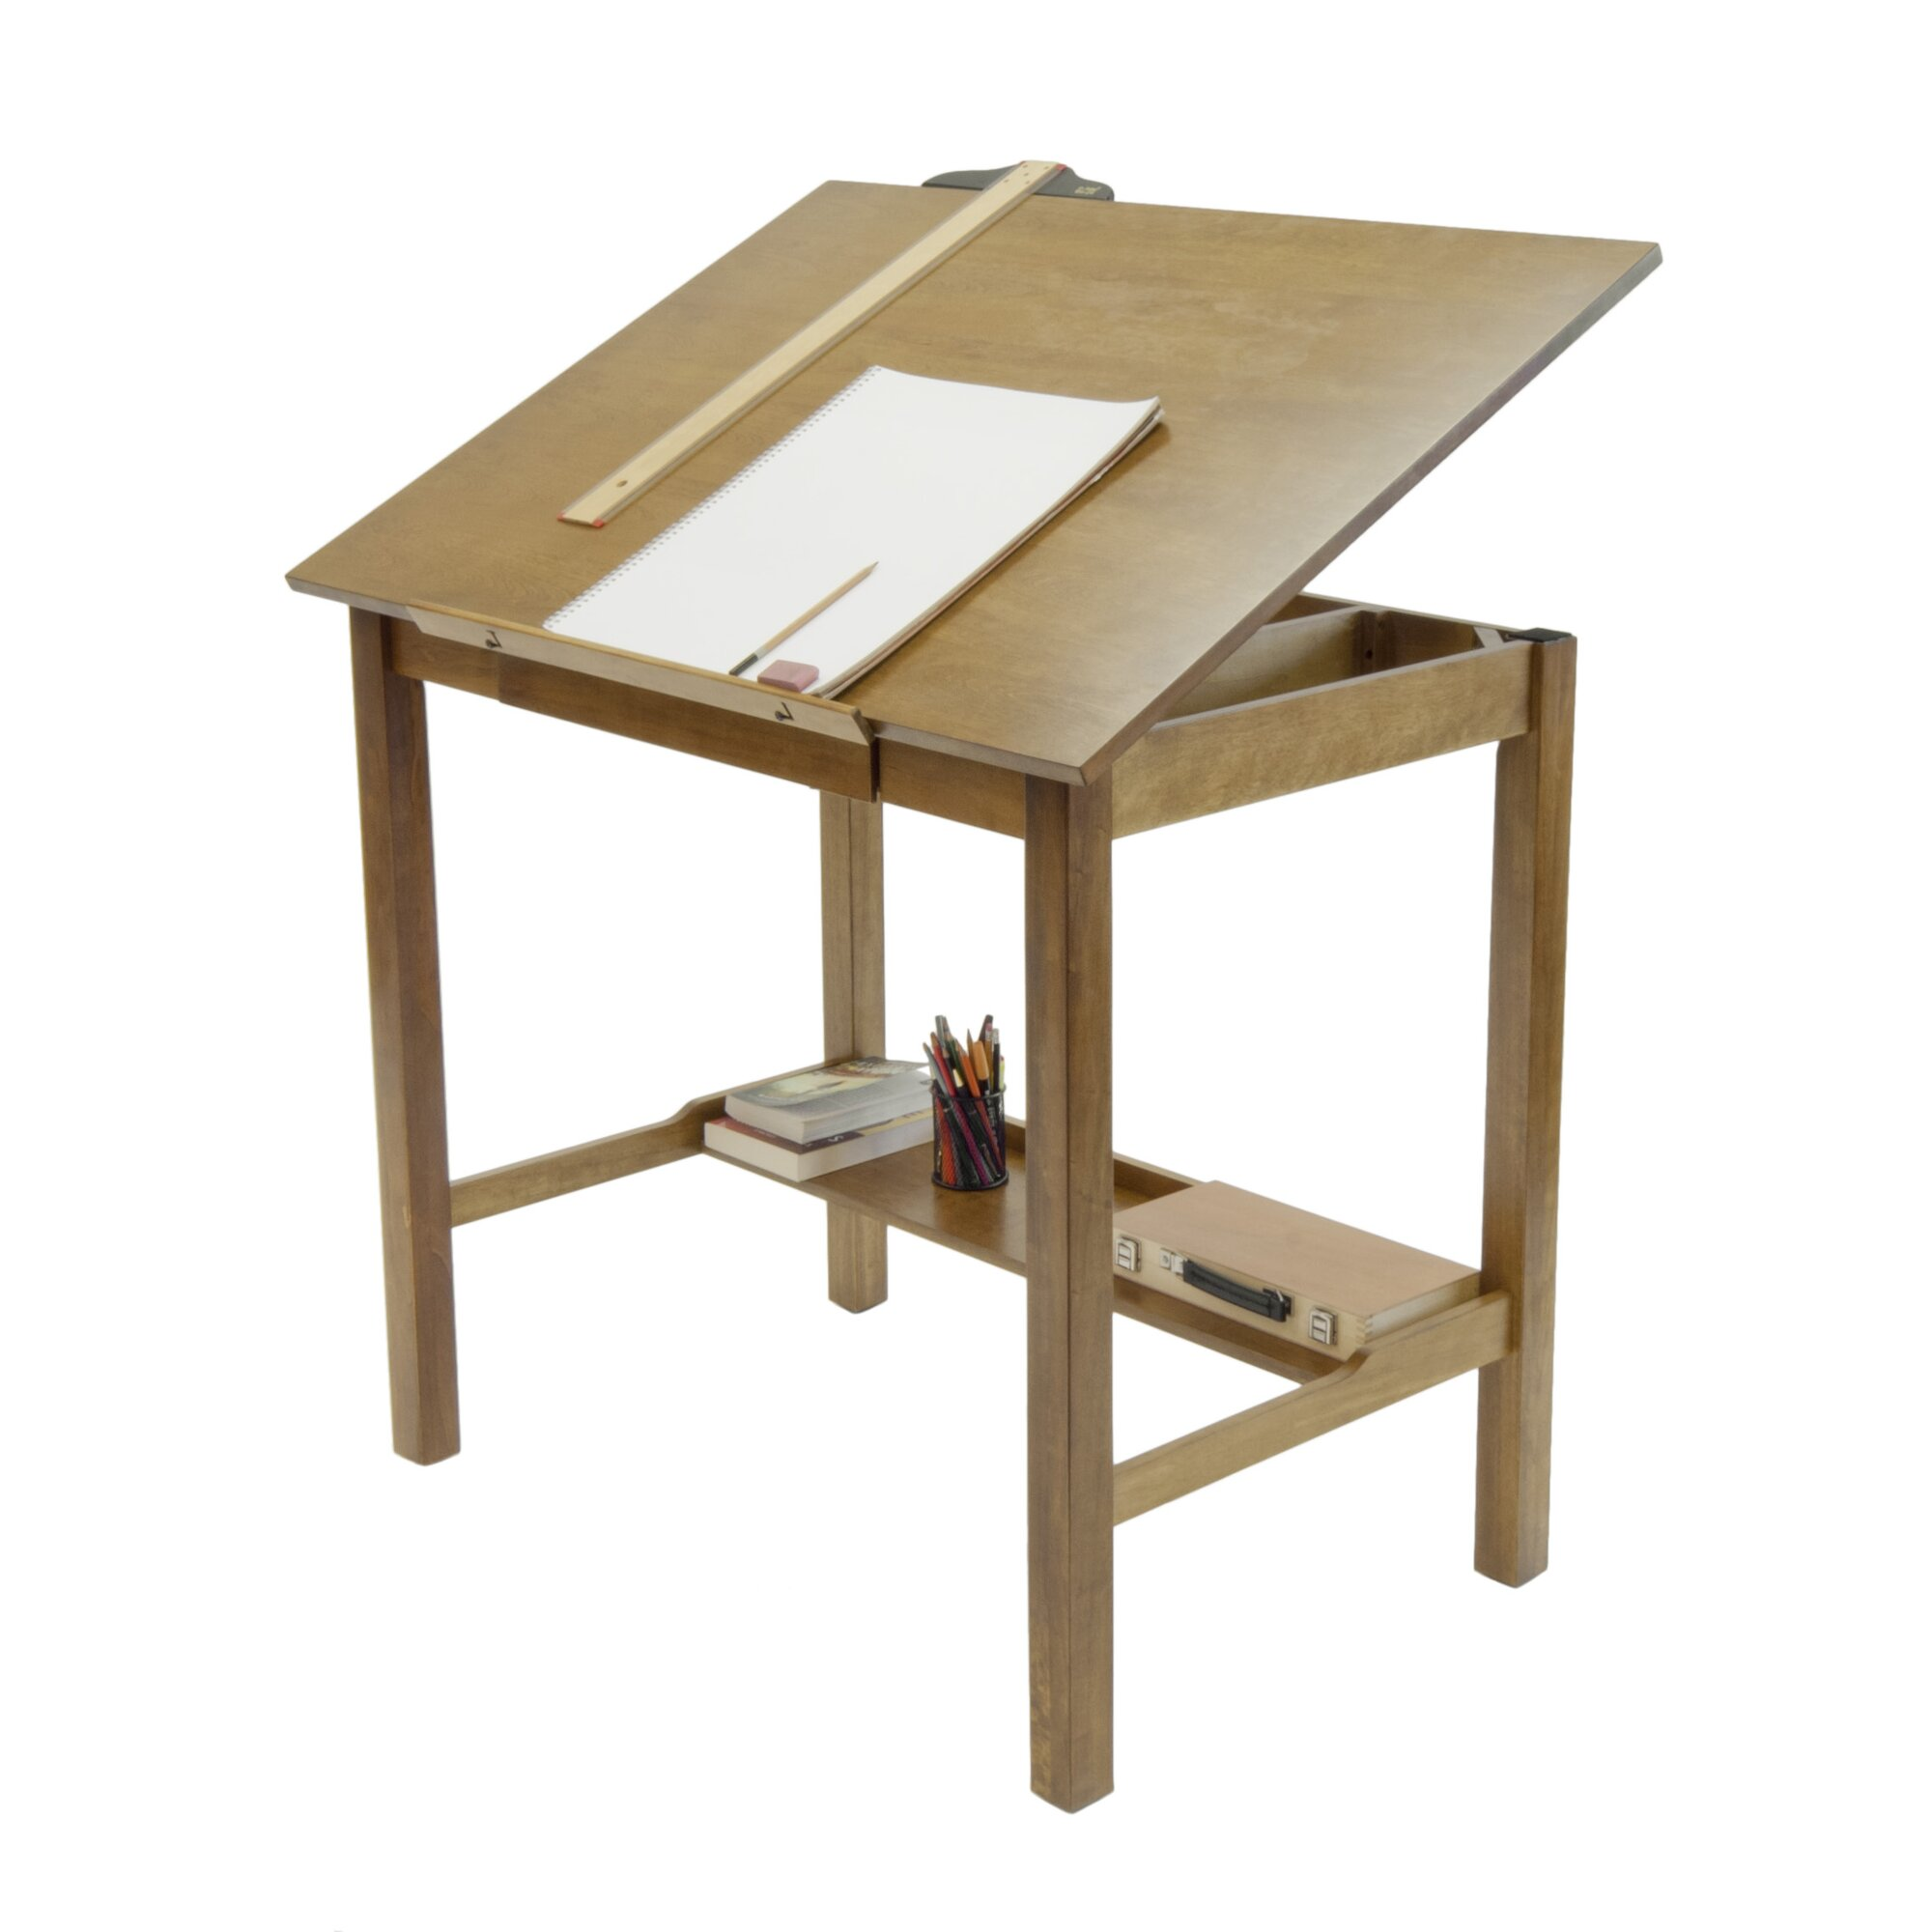 Studio Design Drafting Table comet center with stool drafting furniture drafting tables and drawing boards drafting table sets studio designs Americana Drafting Table